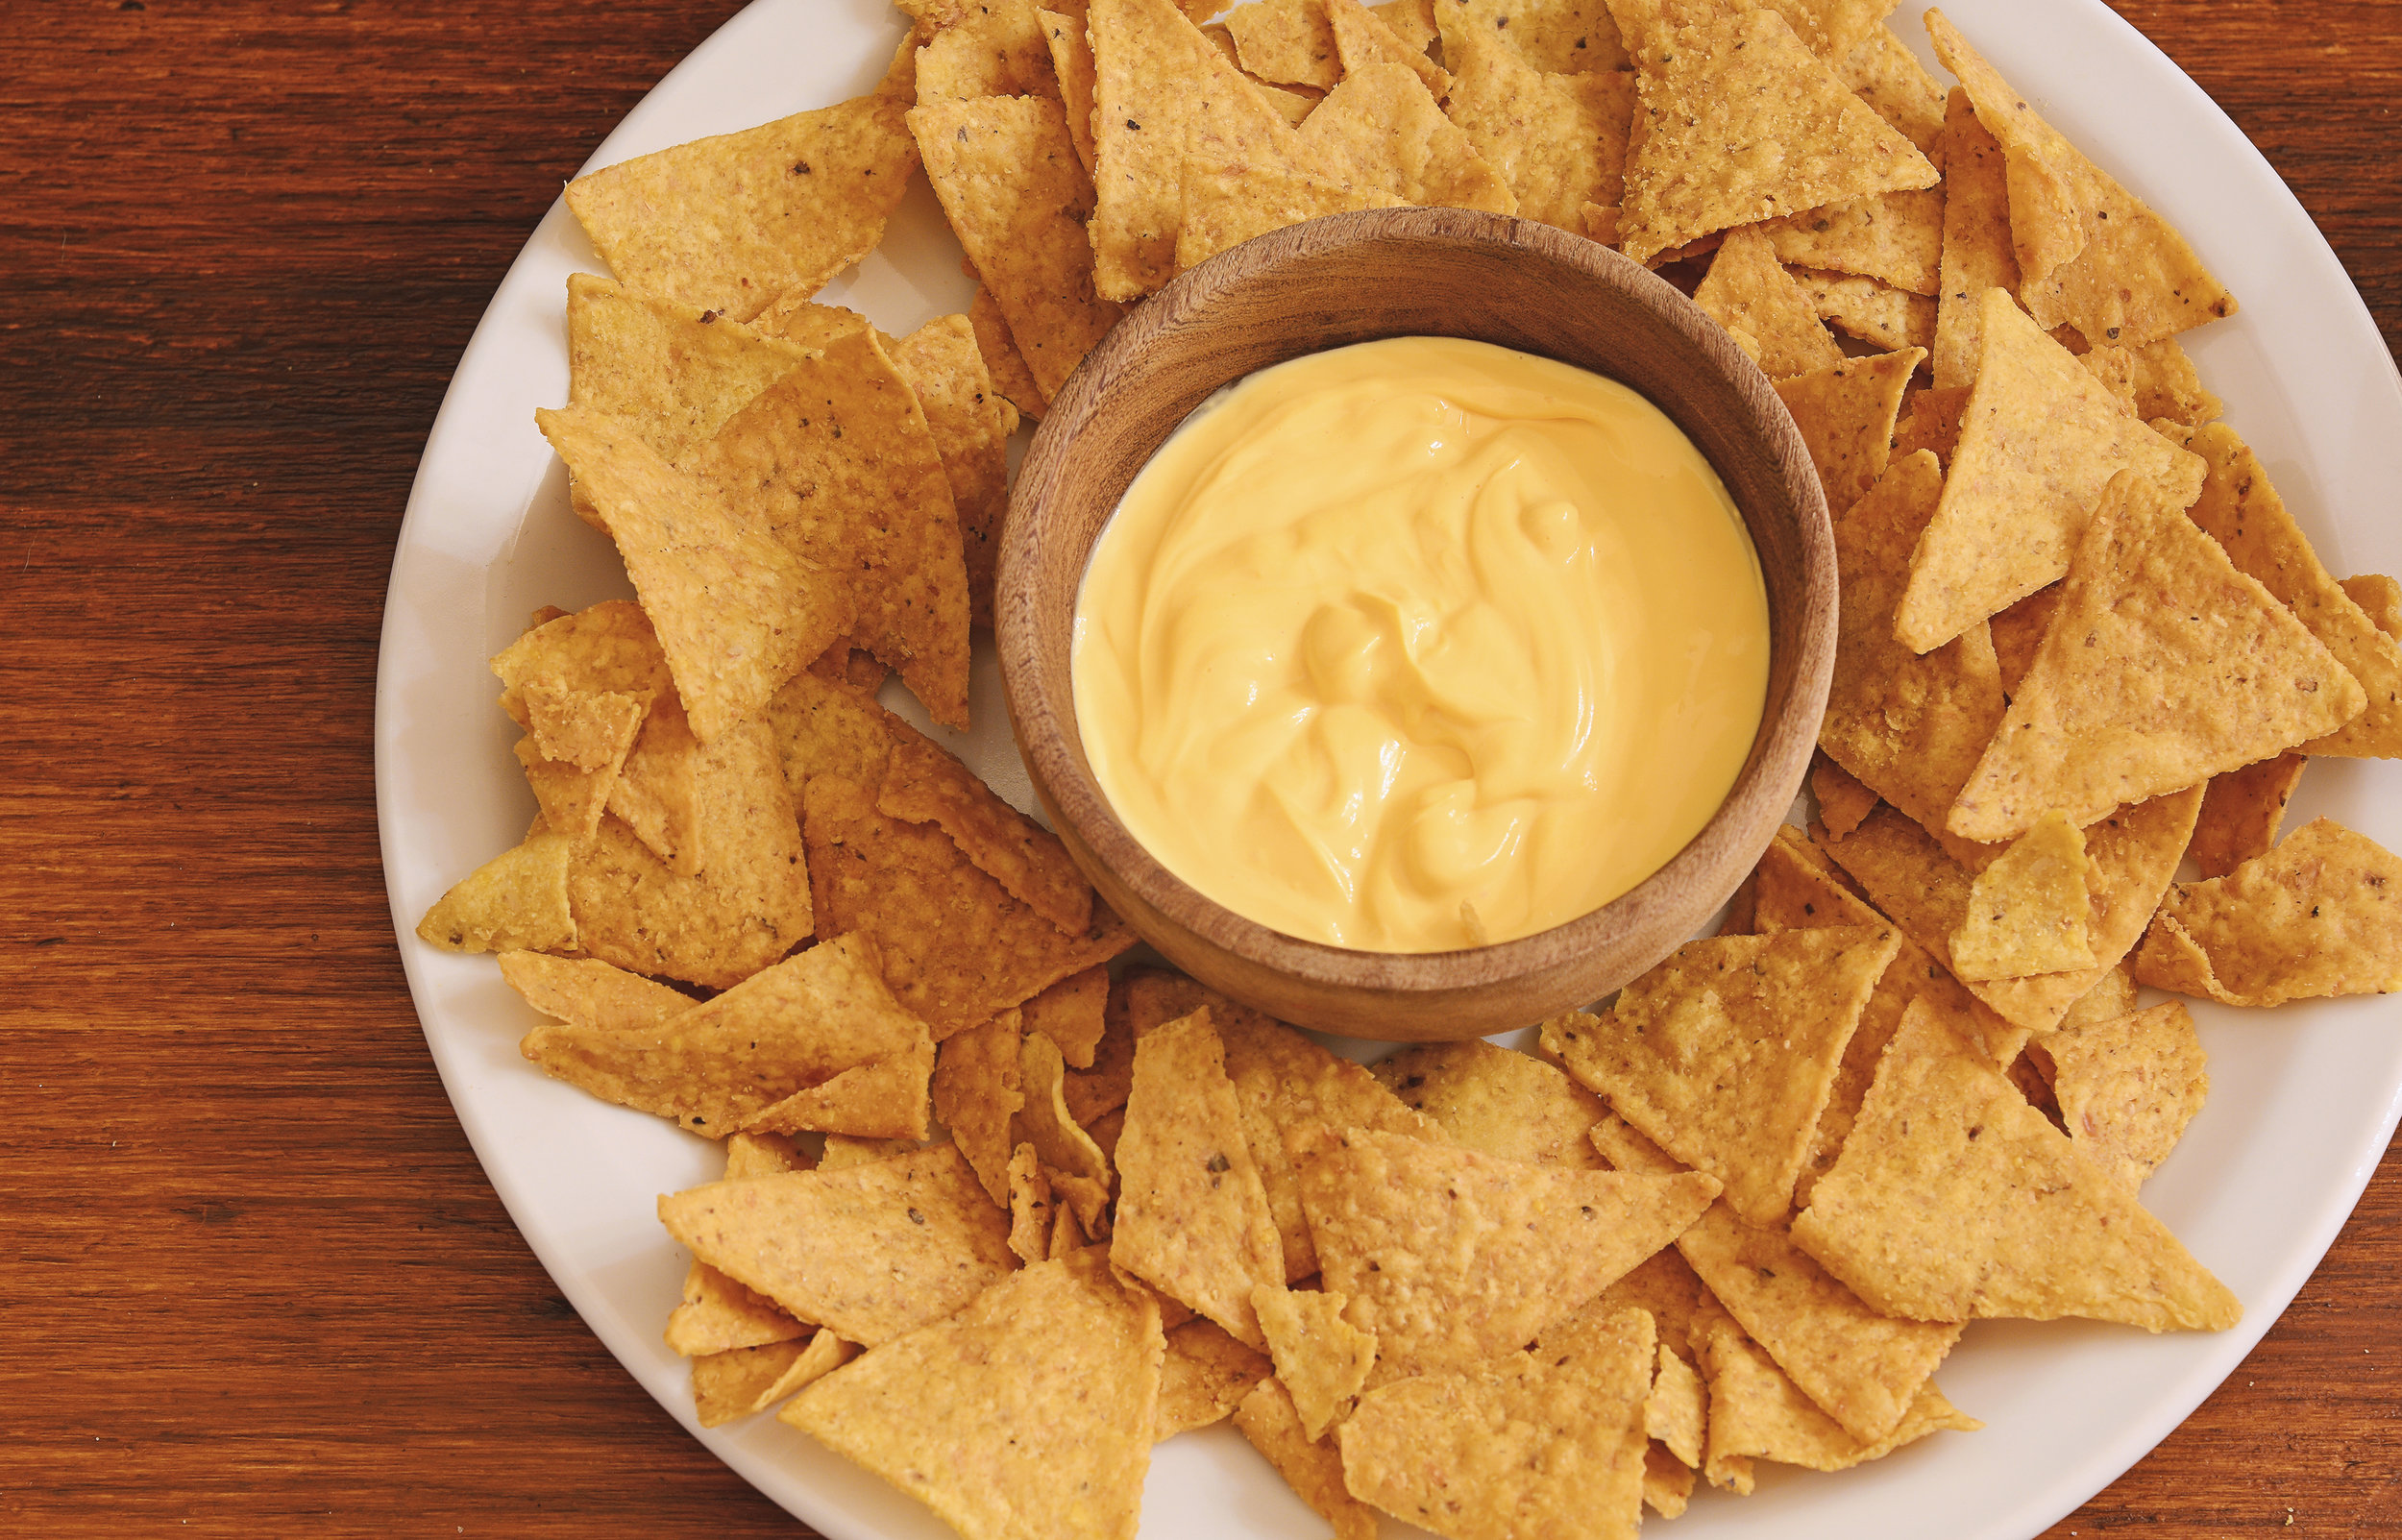 Top-view-of-nachos-with-cheese-dip.jpg